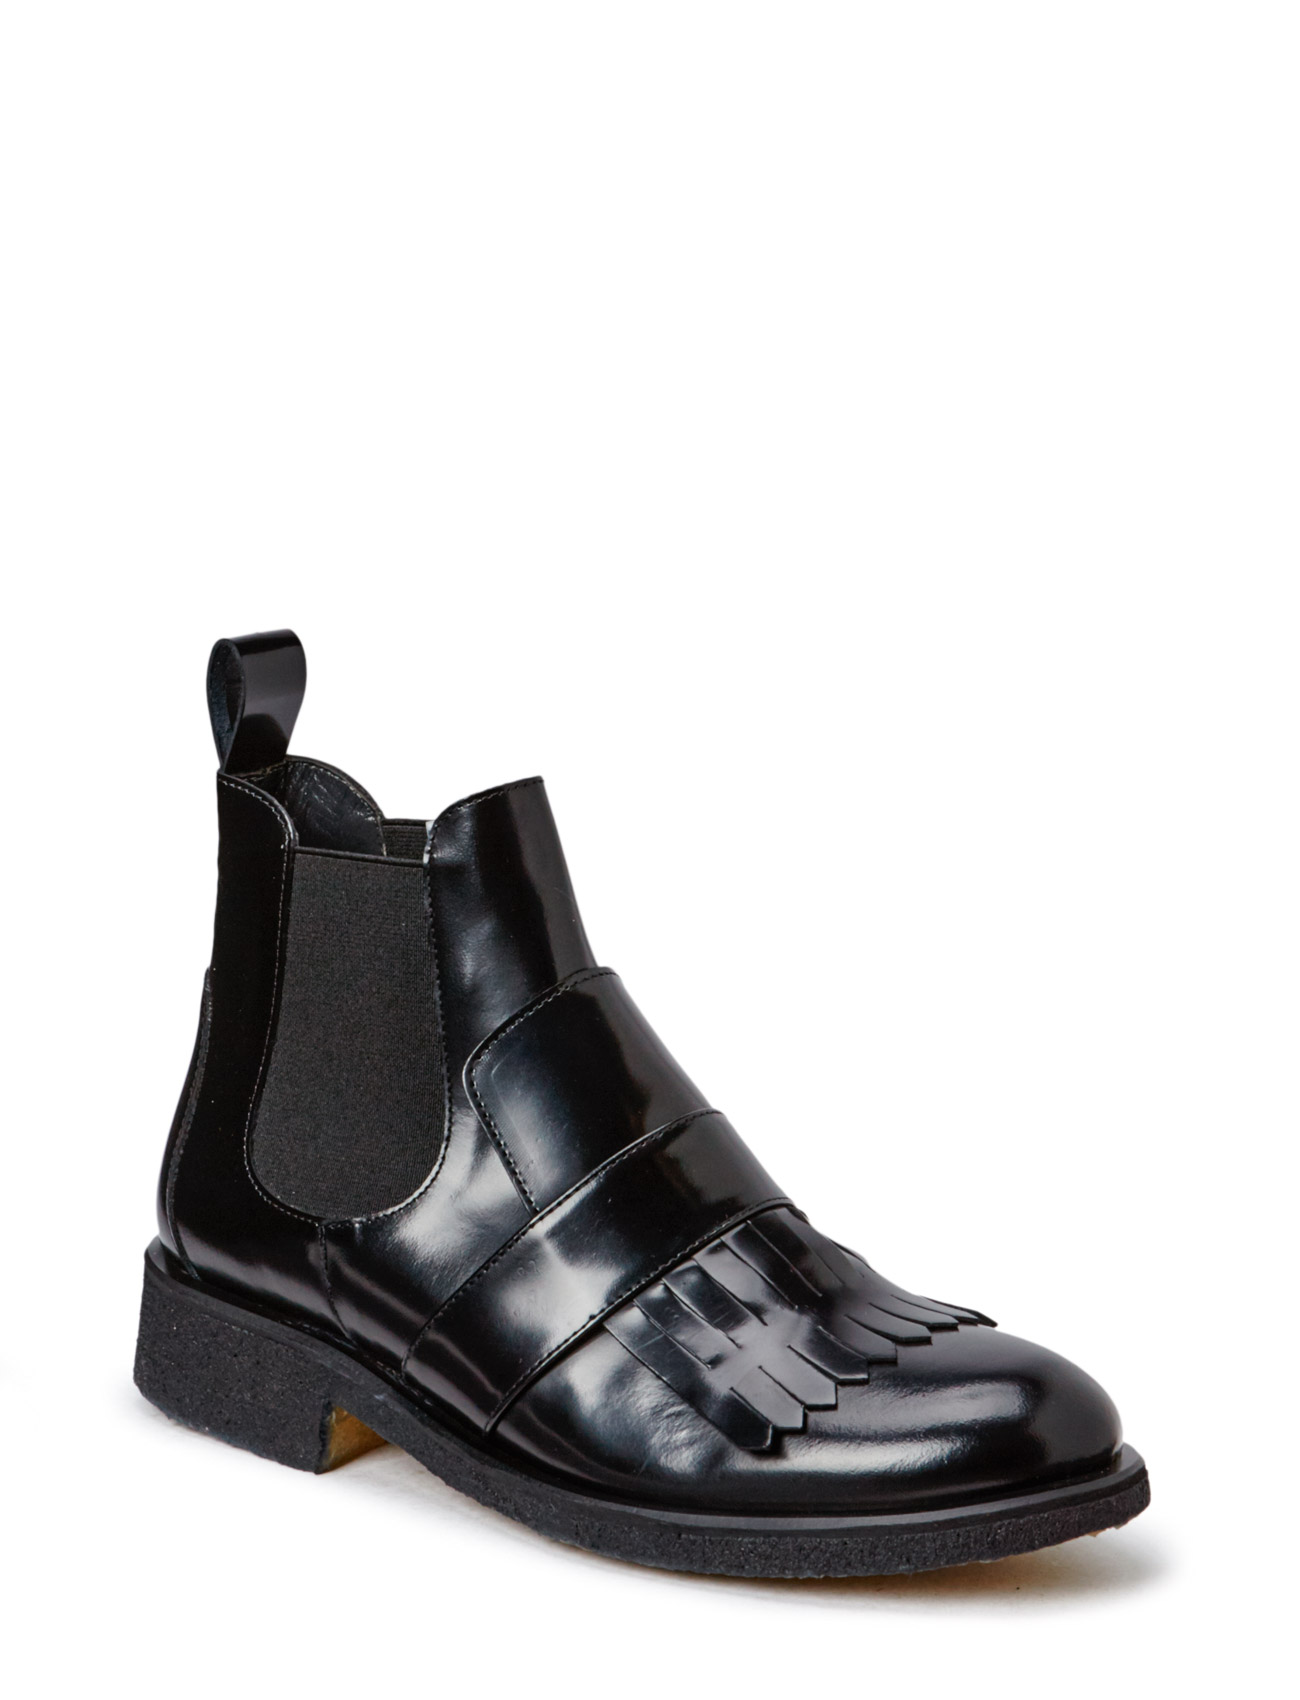 Image of Booties - Flat - With Elastic Shoes Boots Chelsea Boots Ankle Boot - Flat Sort ANGULUS (3452093509)